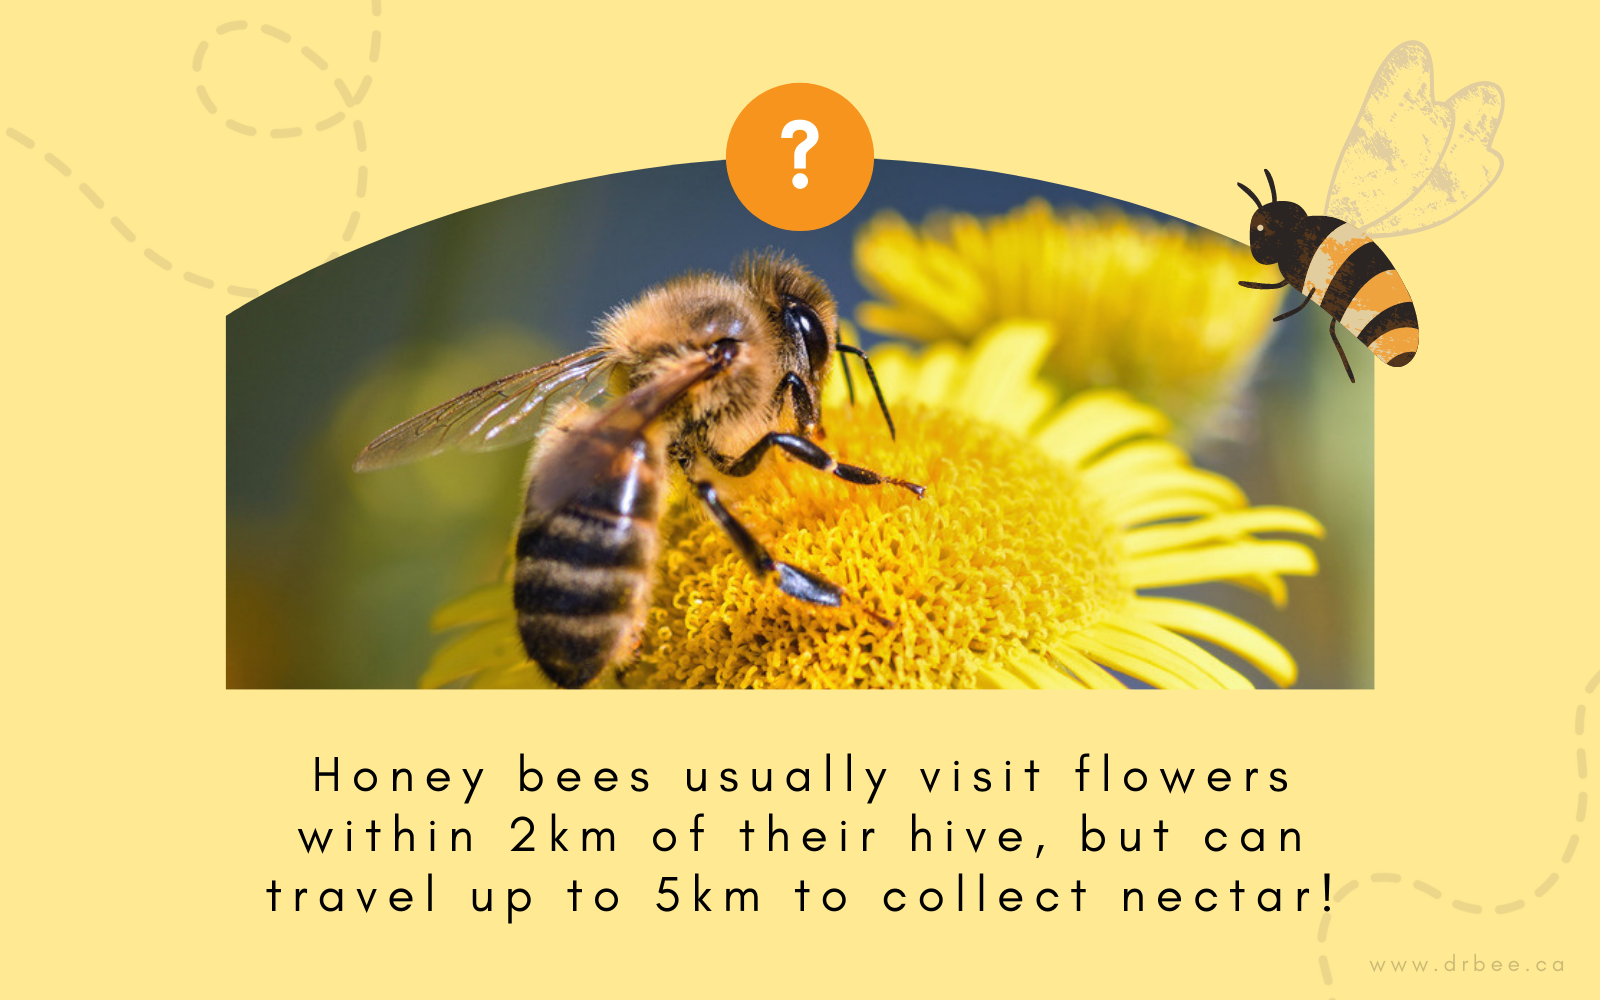 Honey bees usually visit flowers within 2km of the hive, but can travel up to 5km to collect nectar!